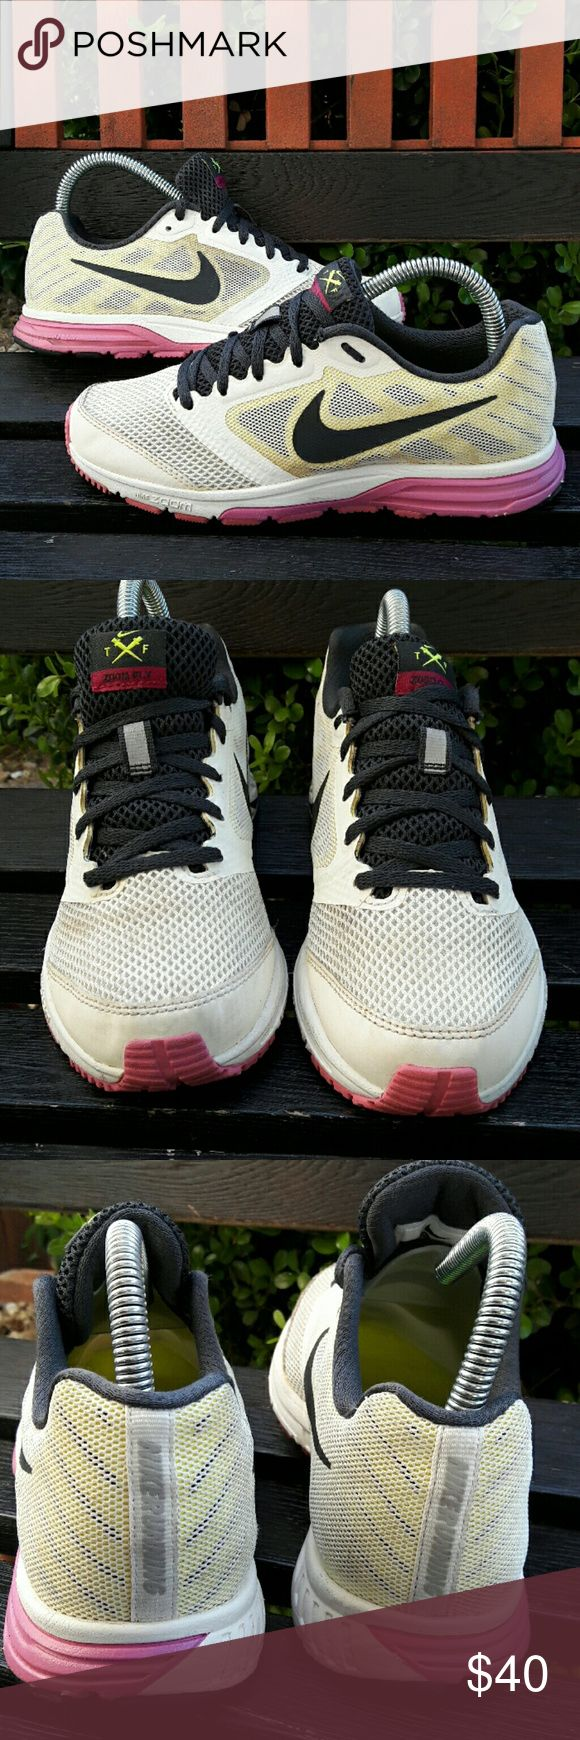 Nike zoom fly In good condition  A bit dirty can be cleaned   Checkout my listings for more awesome stuff! Nike Shoes Athletic Shoes